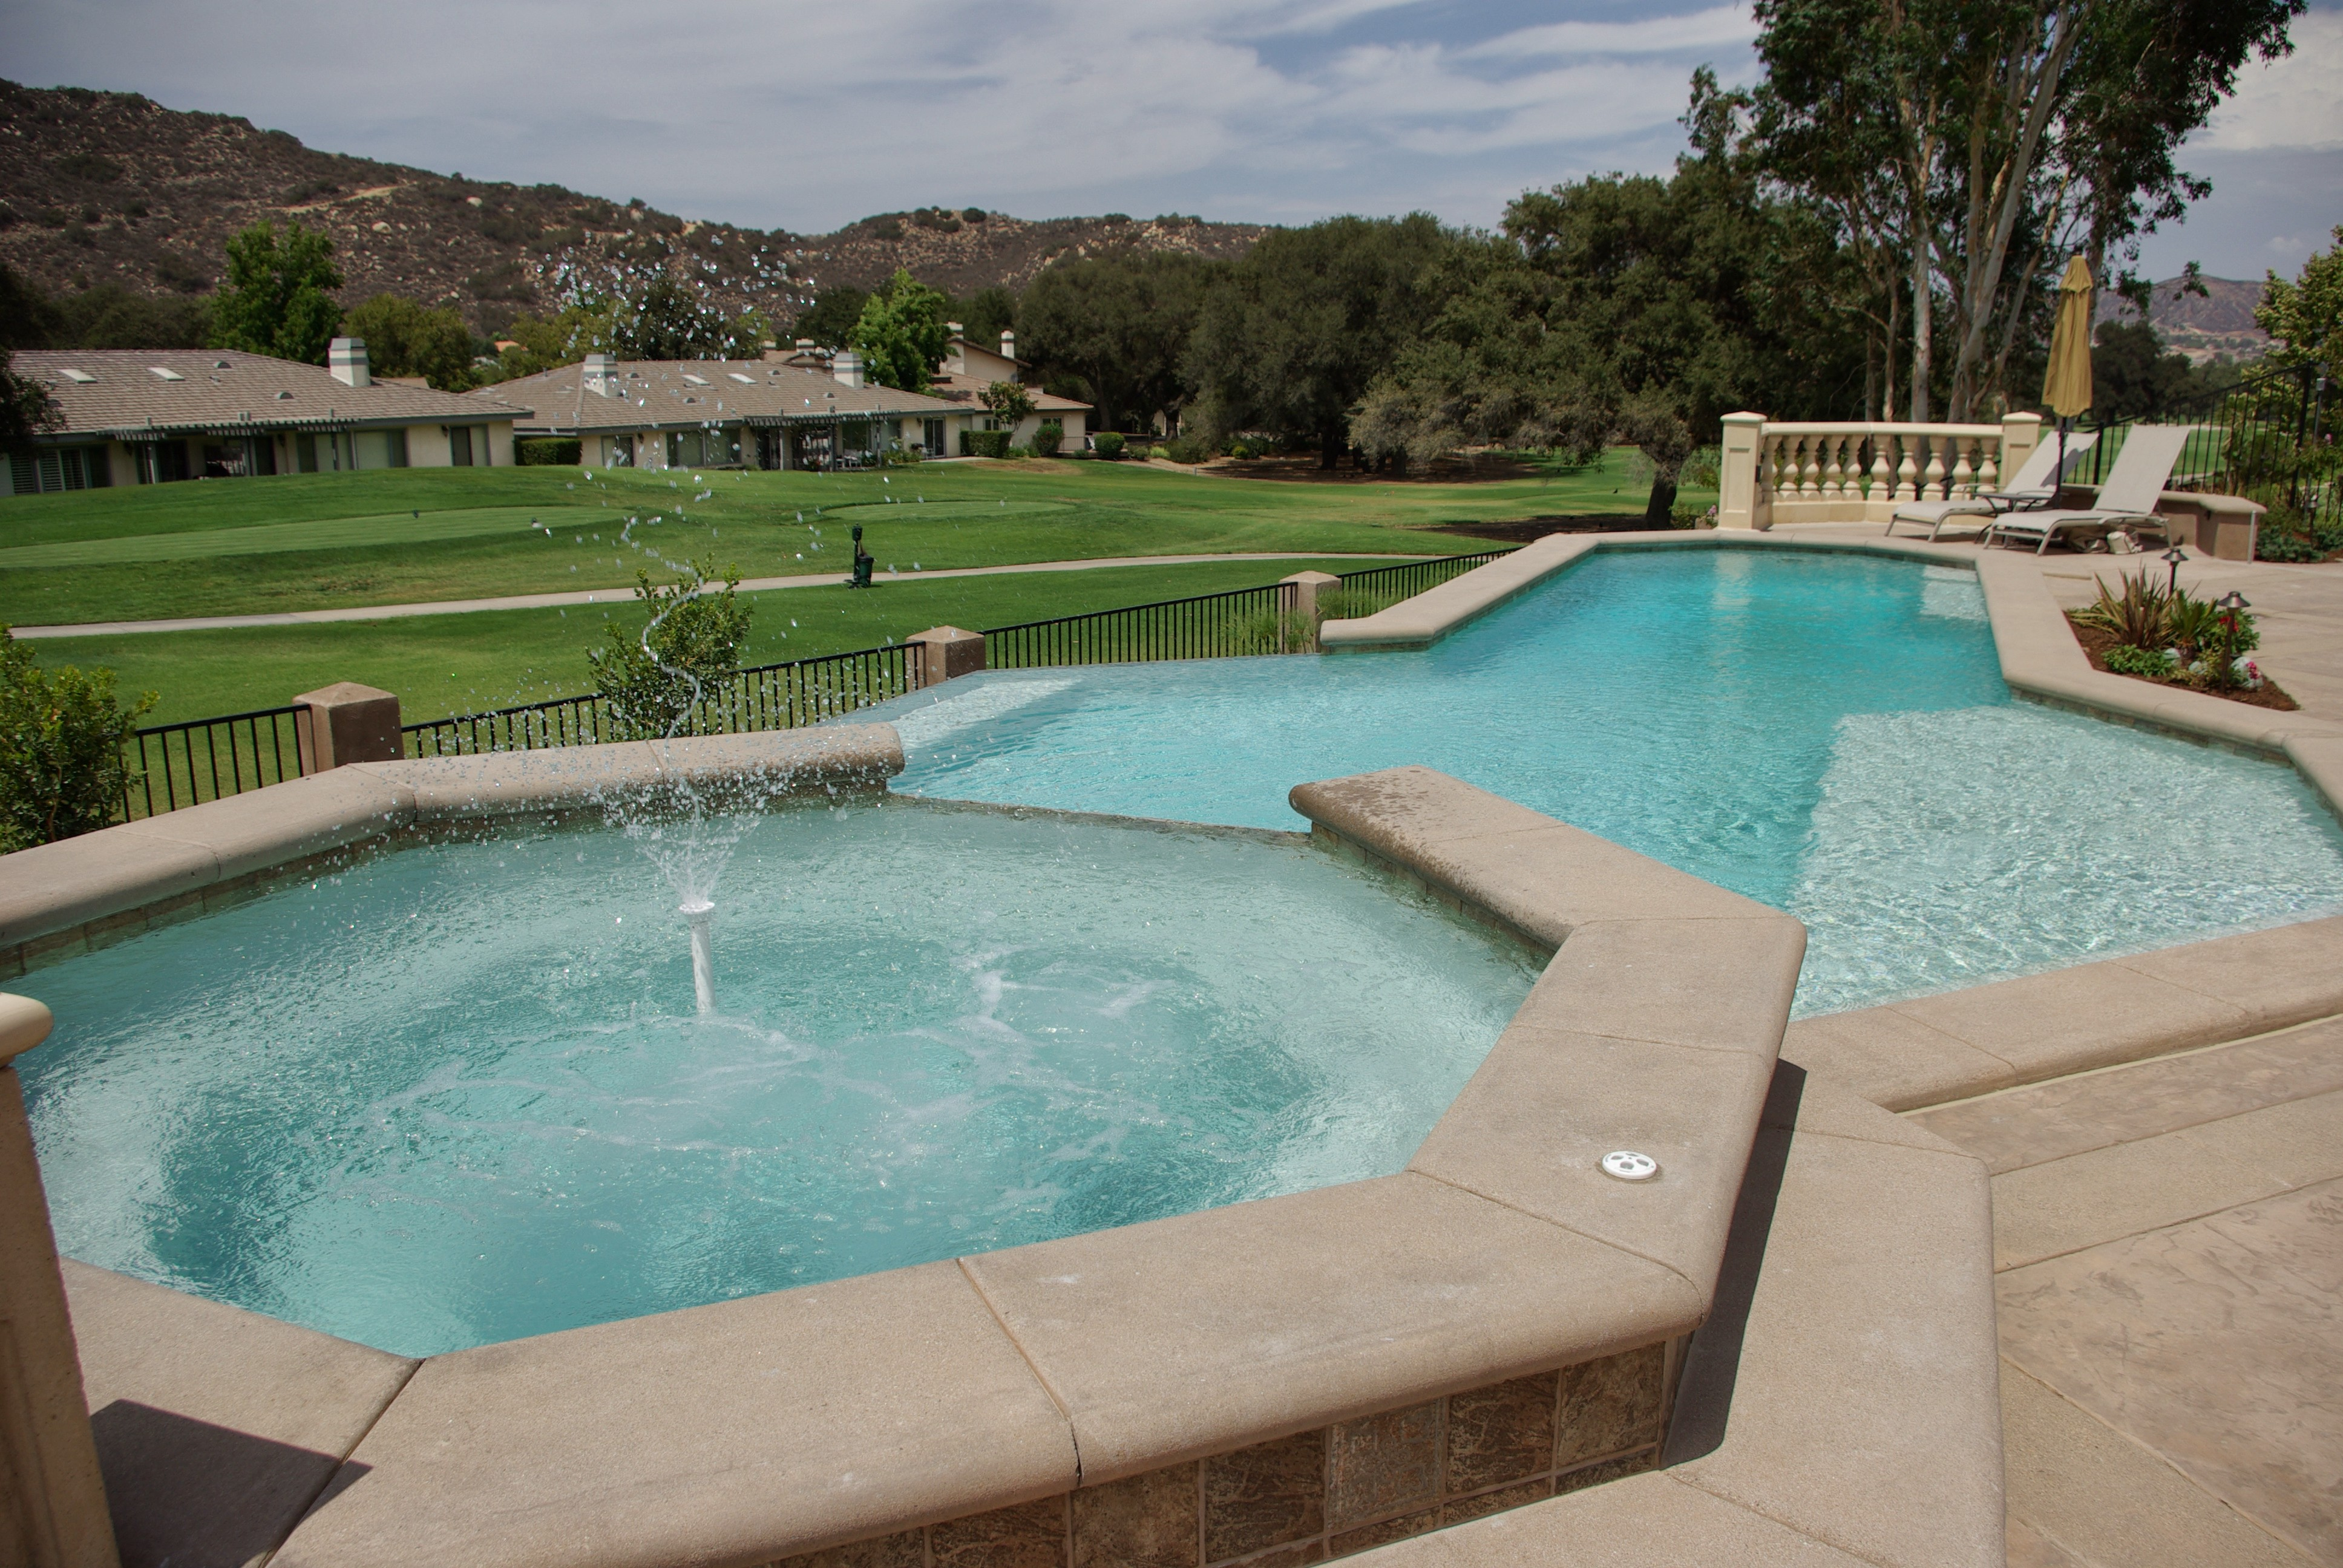 Infinium pools and construction temecula california ca for Local pool contractors